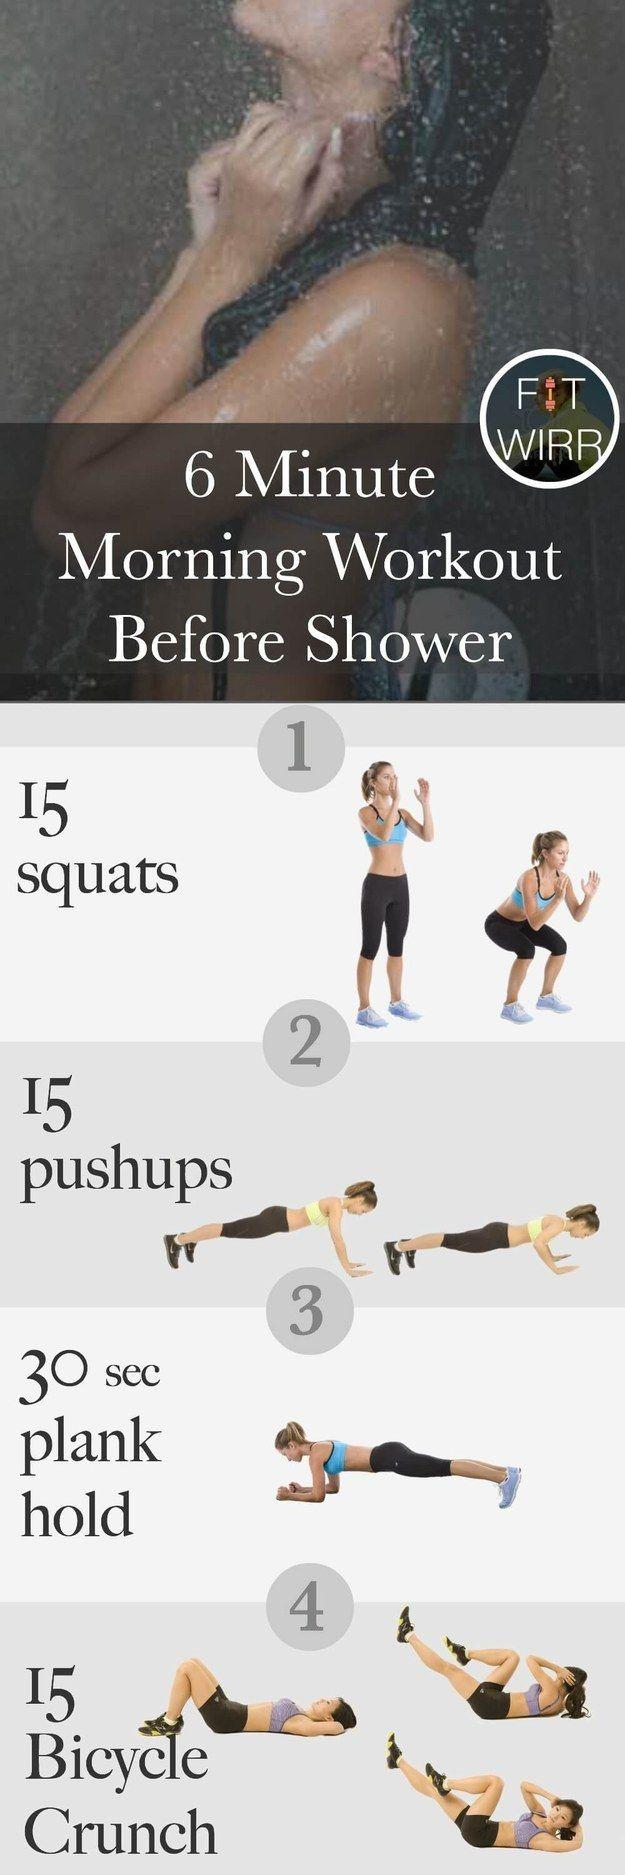 Wedding - 18 Quick Workouts That'll Help You Exercise Pretty Much Anywhere